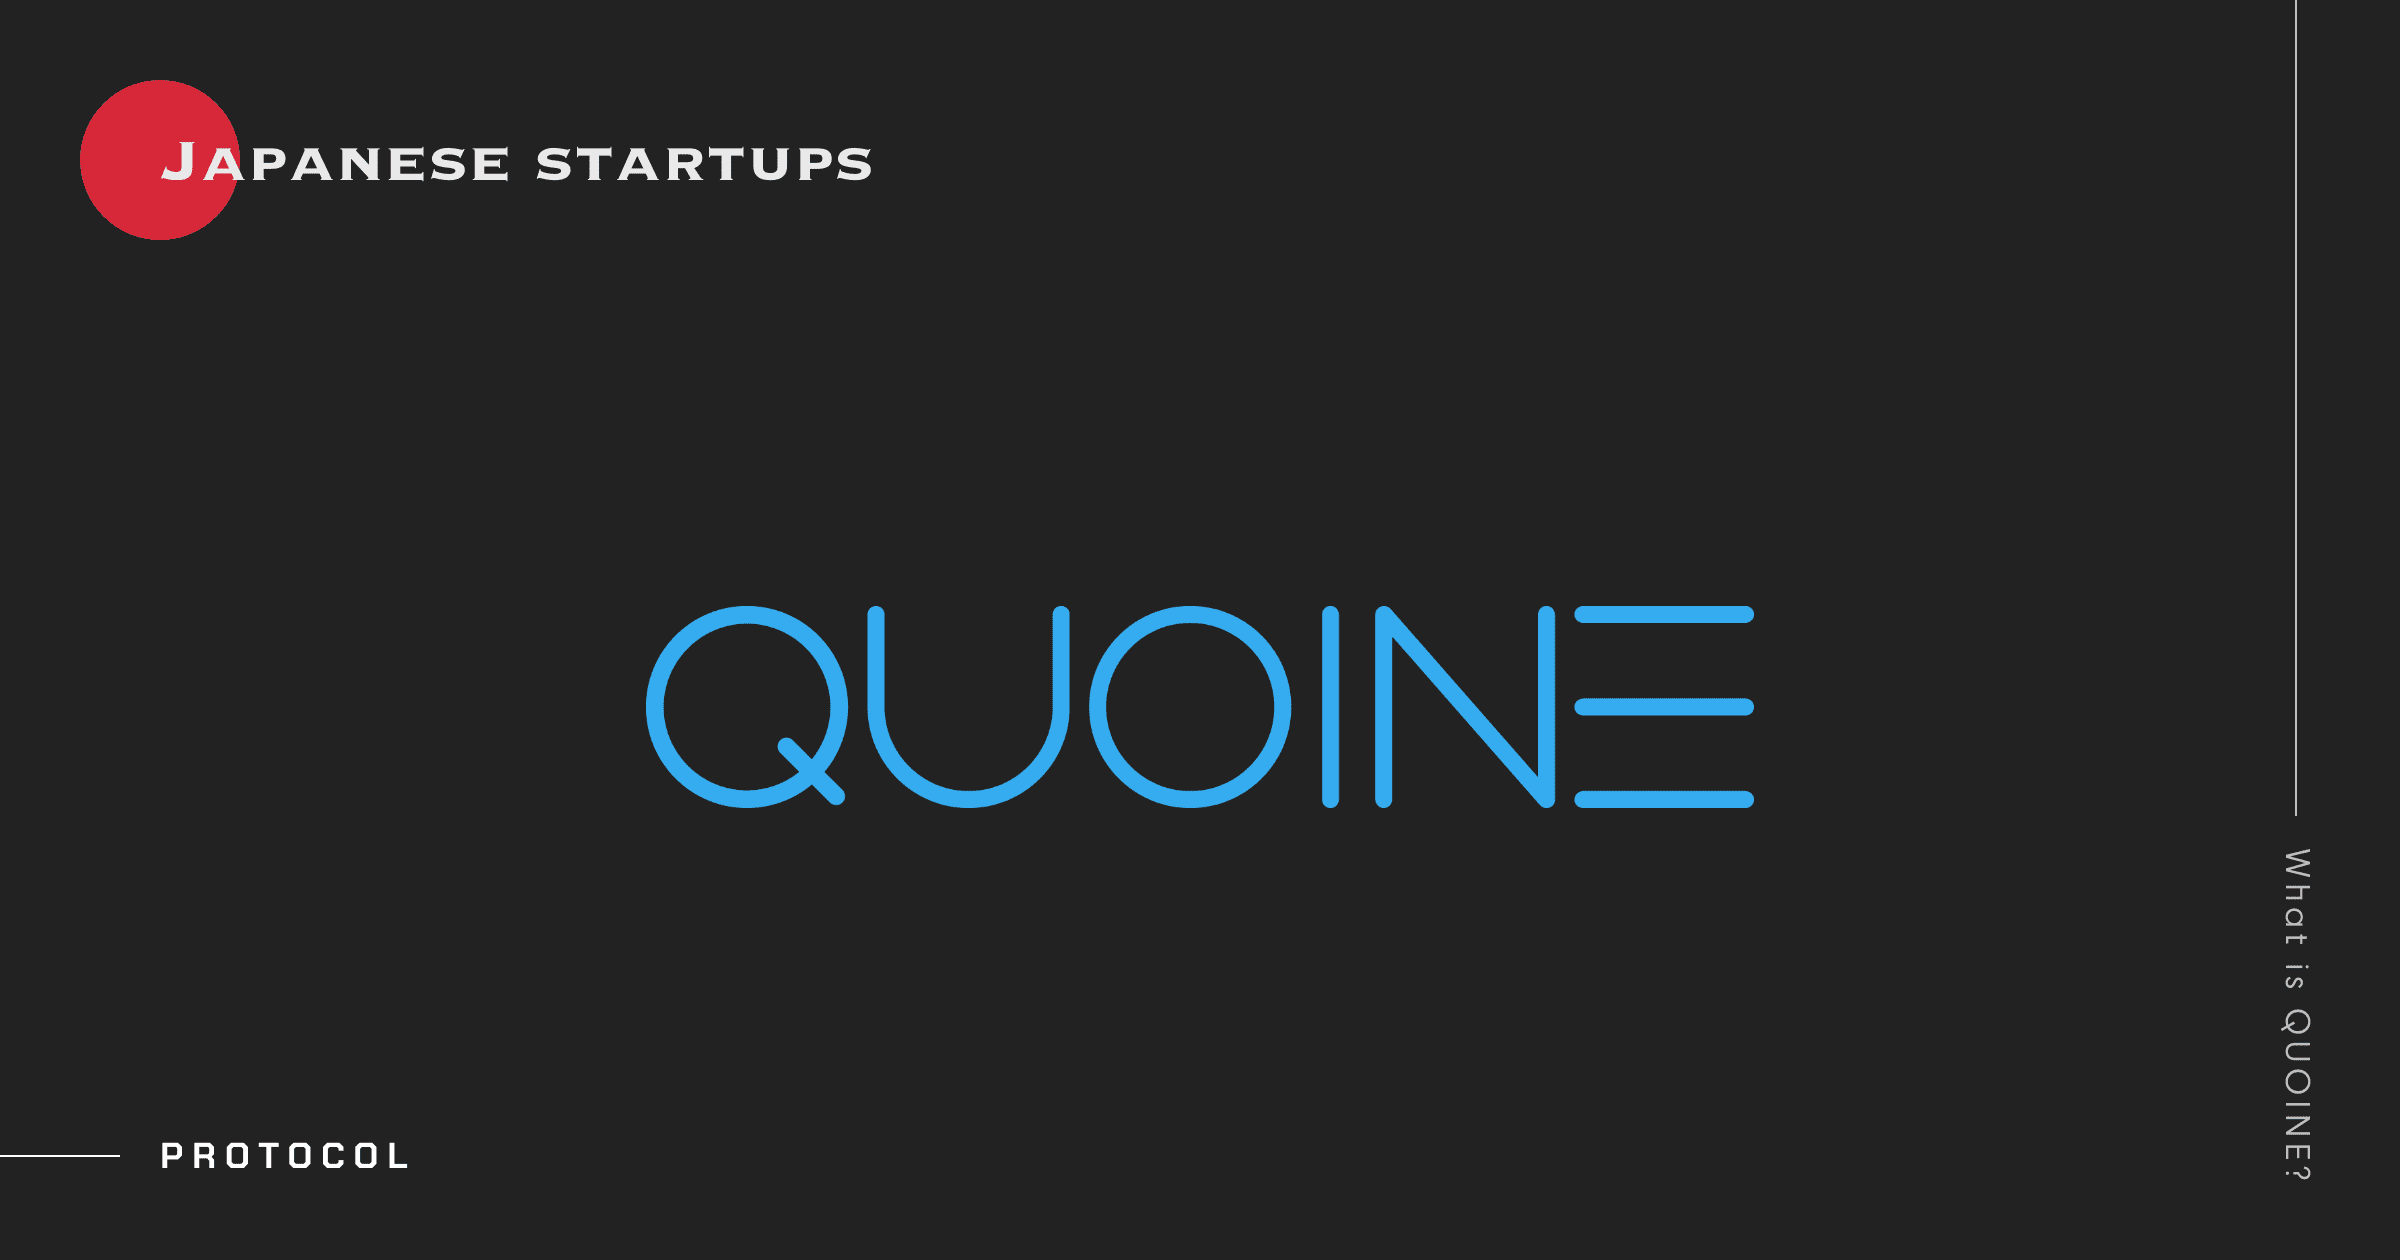 Japanese Startups: What Is QUOINE?